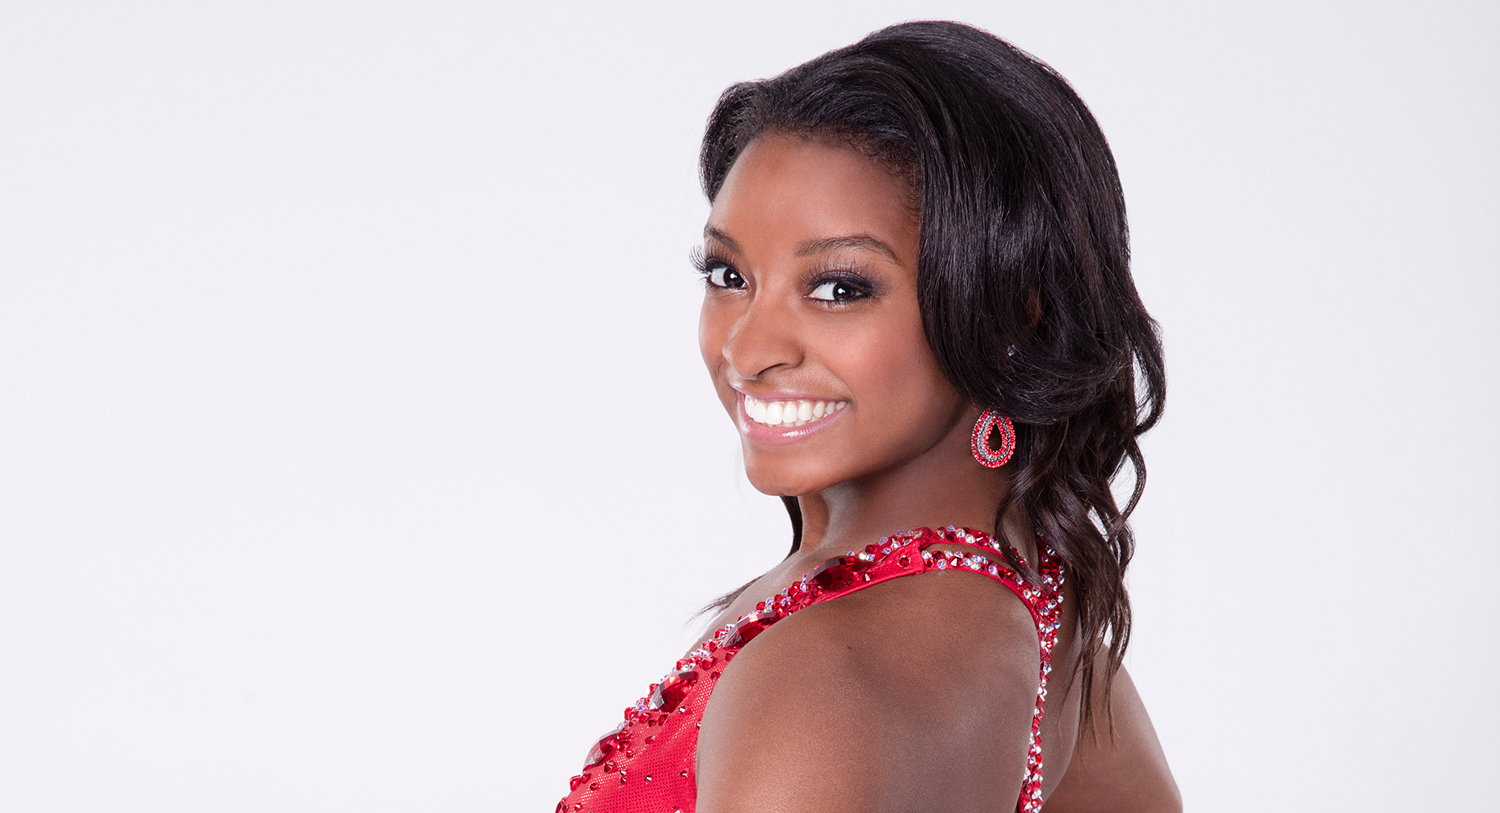 China mcclain breaking news and photos just jared jr page 5 - Simone Biles Says Dwts Is Harder Than She Thought It Would Be